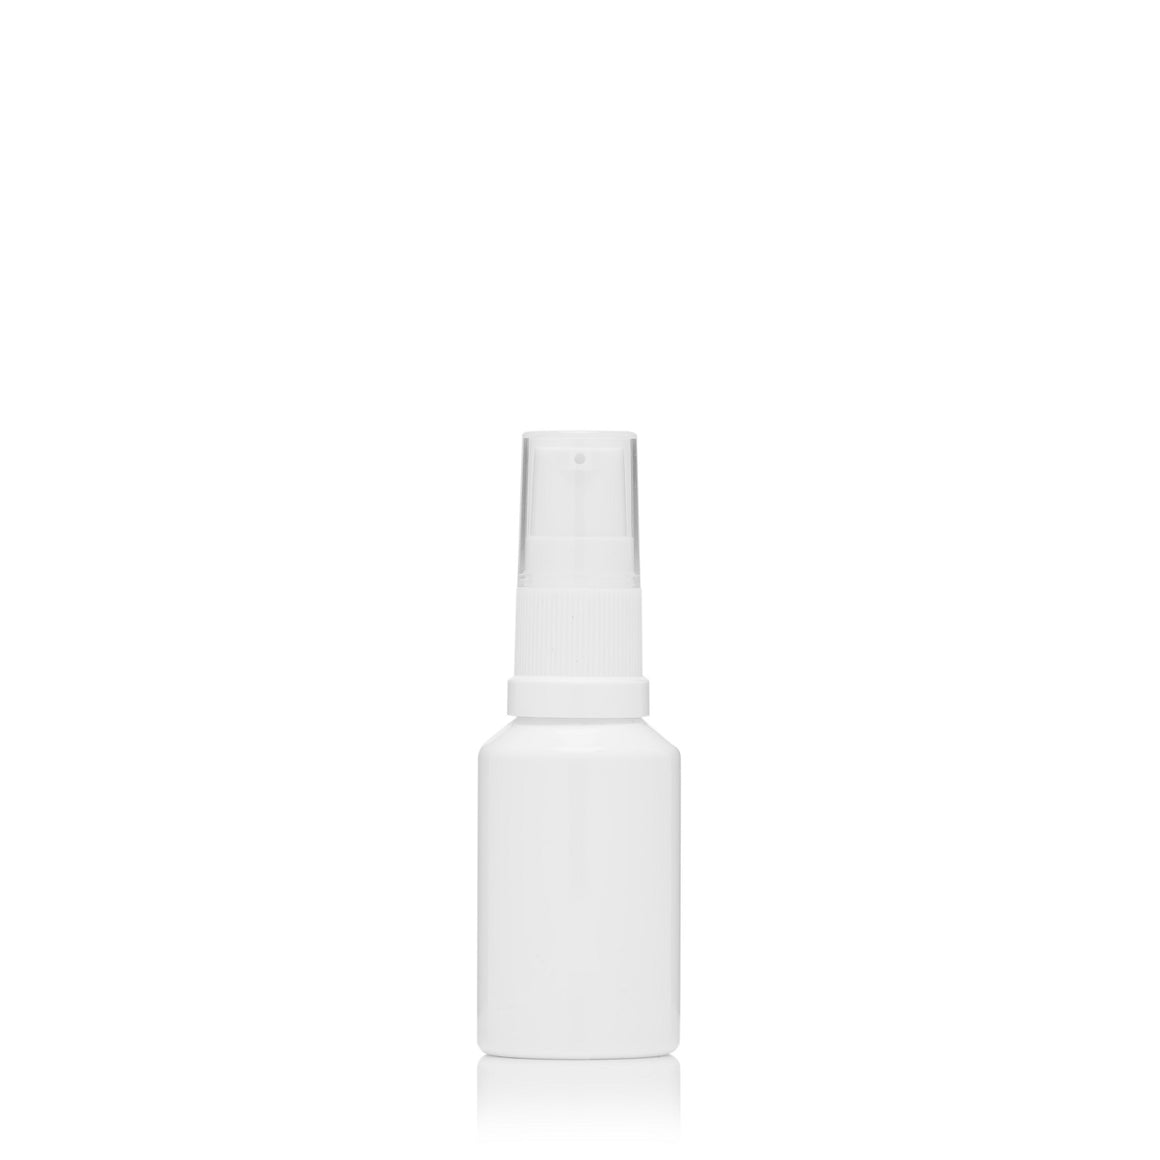 Active Vitamin C Serum - 30ml Pure